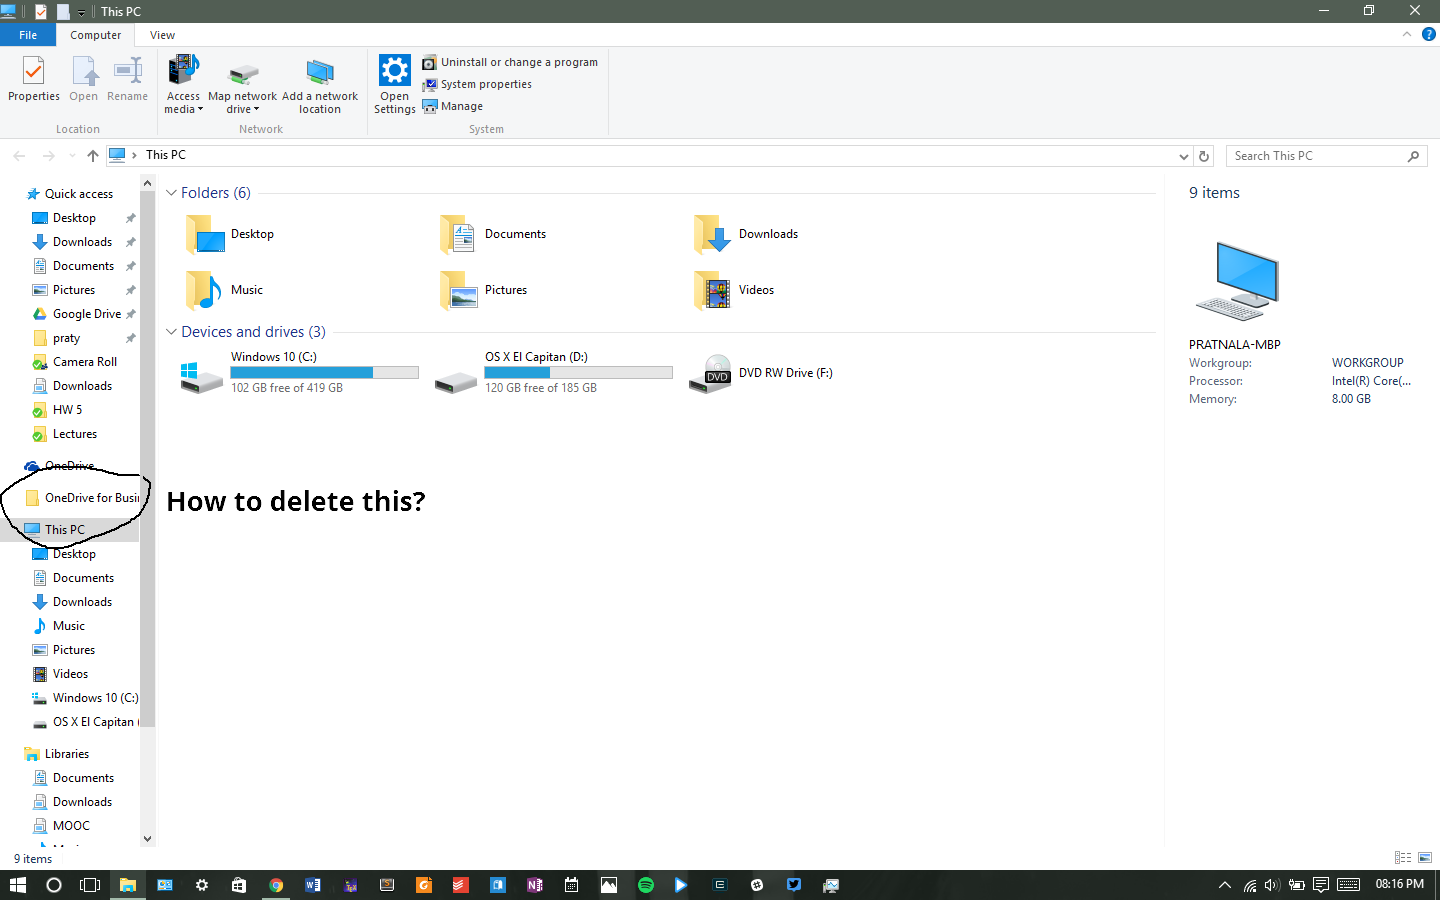 Remove the OneDrive for Business shortcut in the Explorer